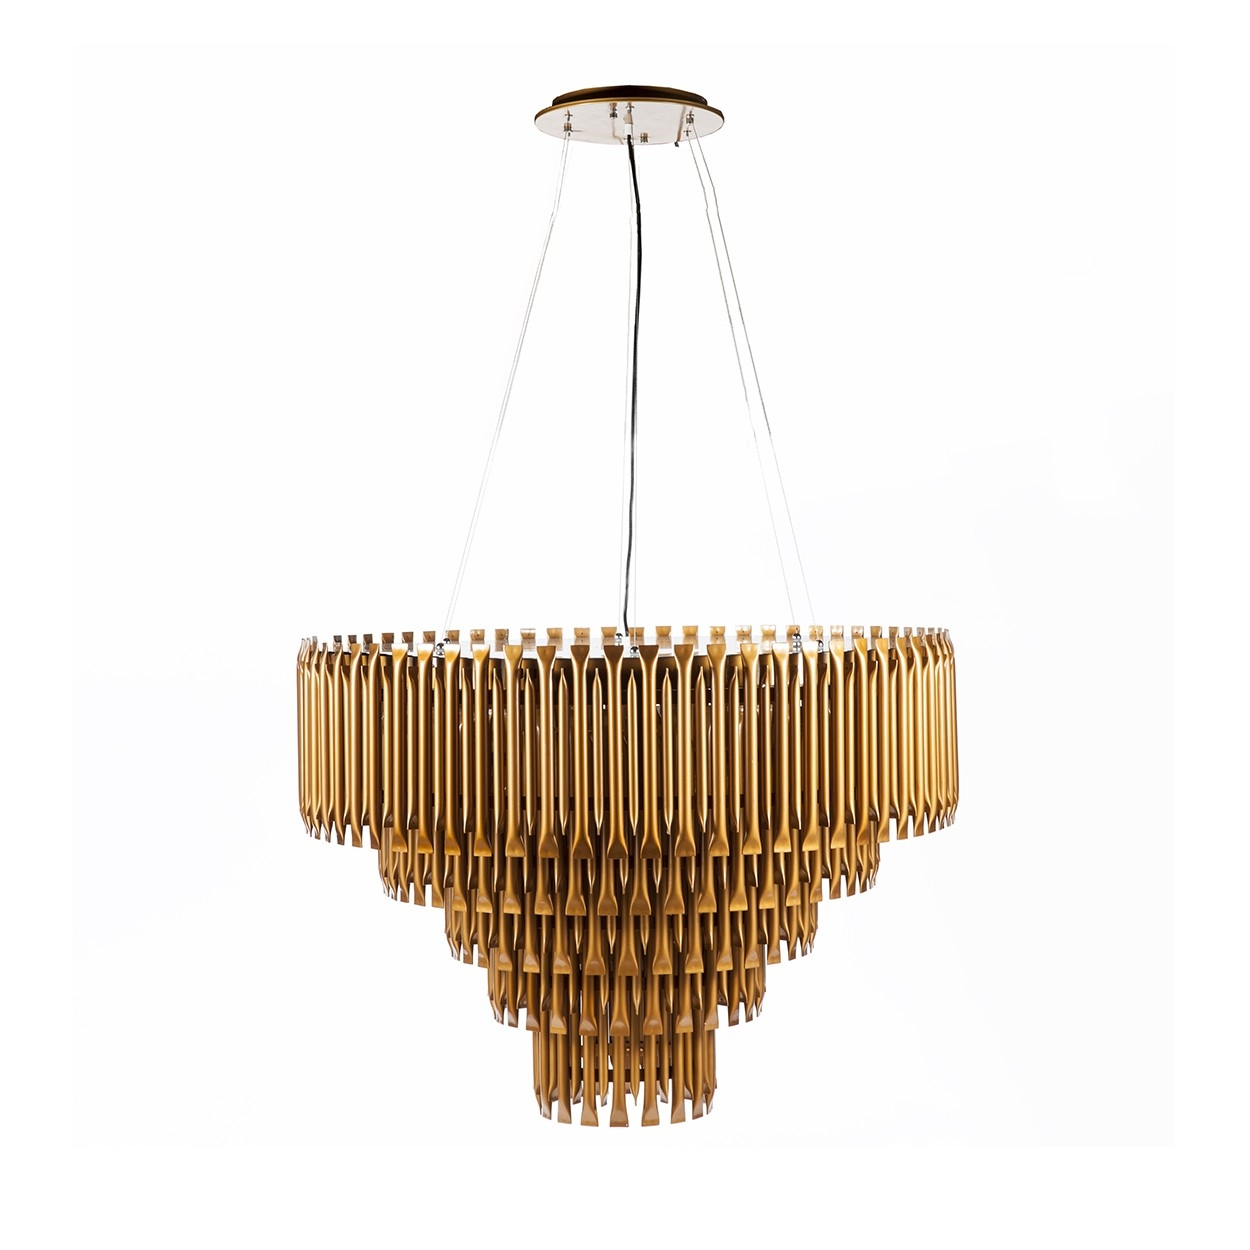 Mcgrath Mid Century Modern Led Chandelier Modernist Lighting Regarding Gold Modern Chandelier (#7 of 12)